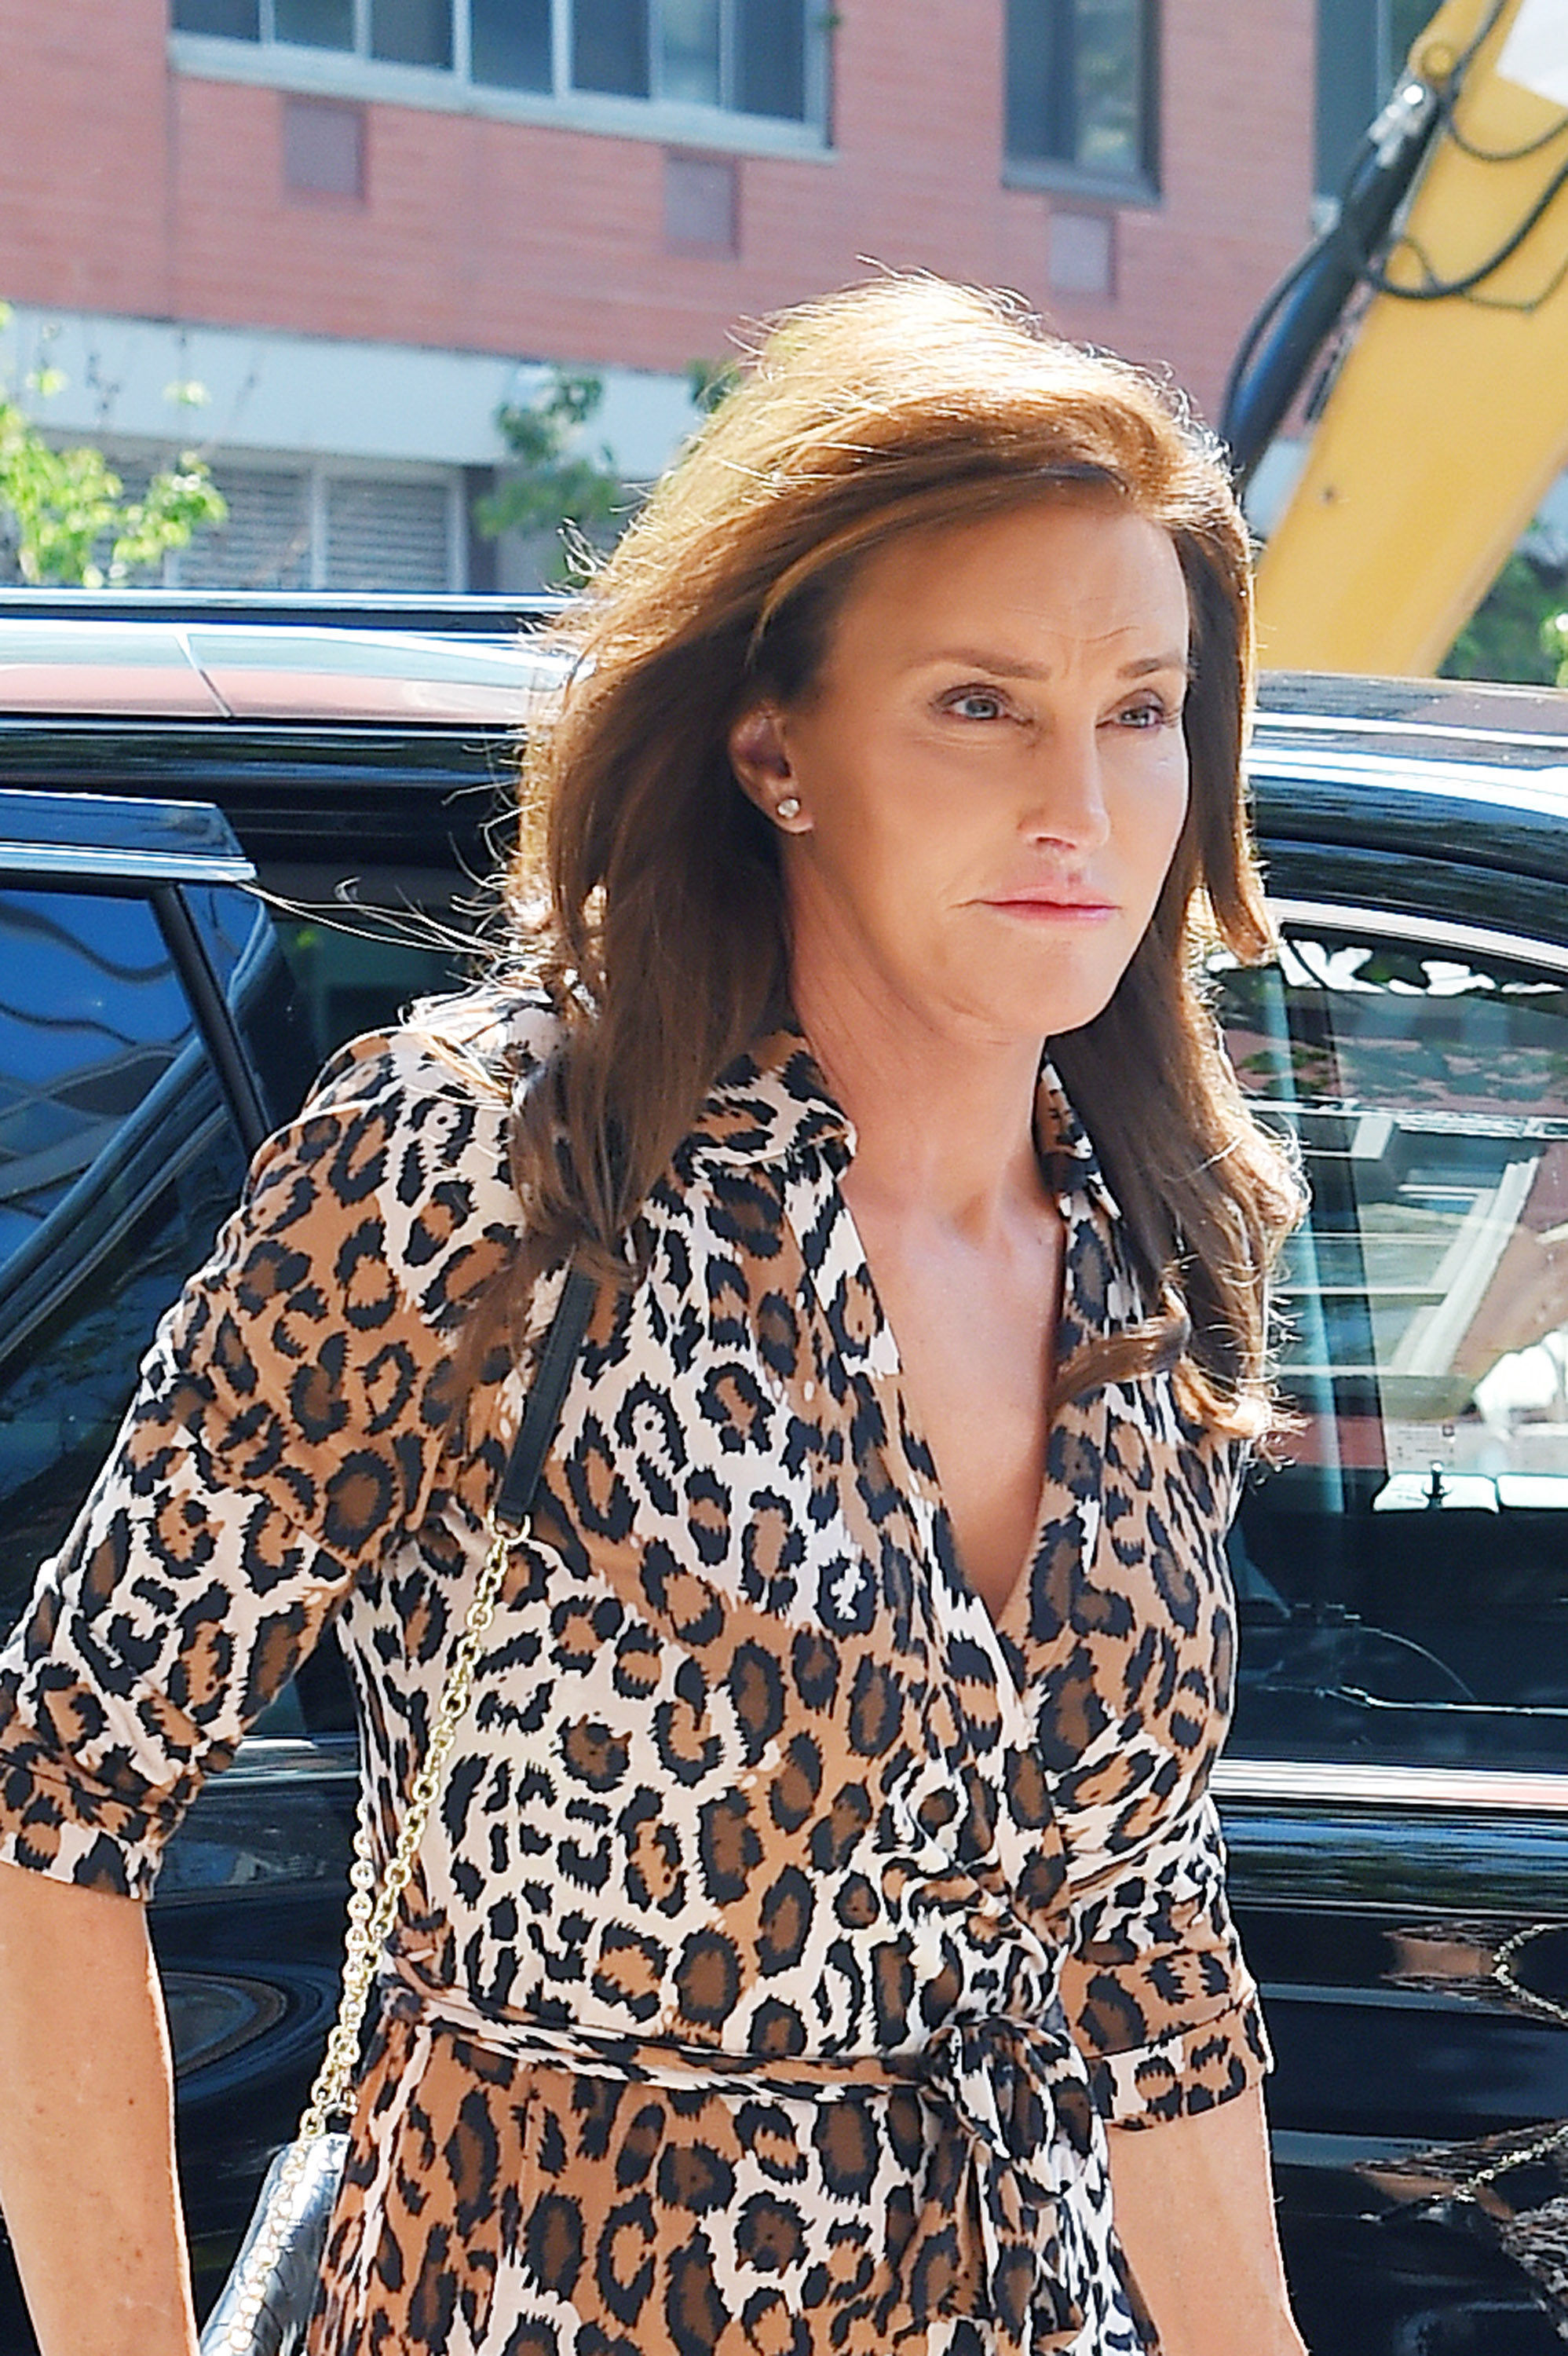 Caitlyn Jenner seen entering Patricia Field store in Soho on June 30, 2015 in New York City.